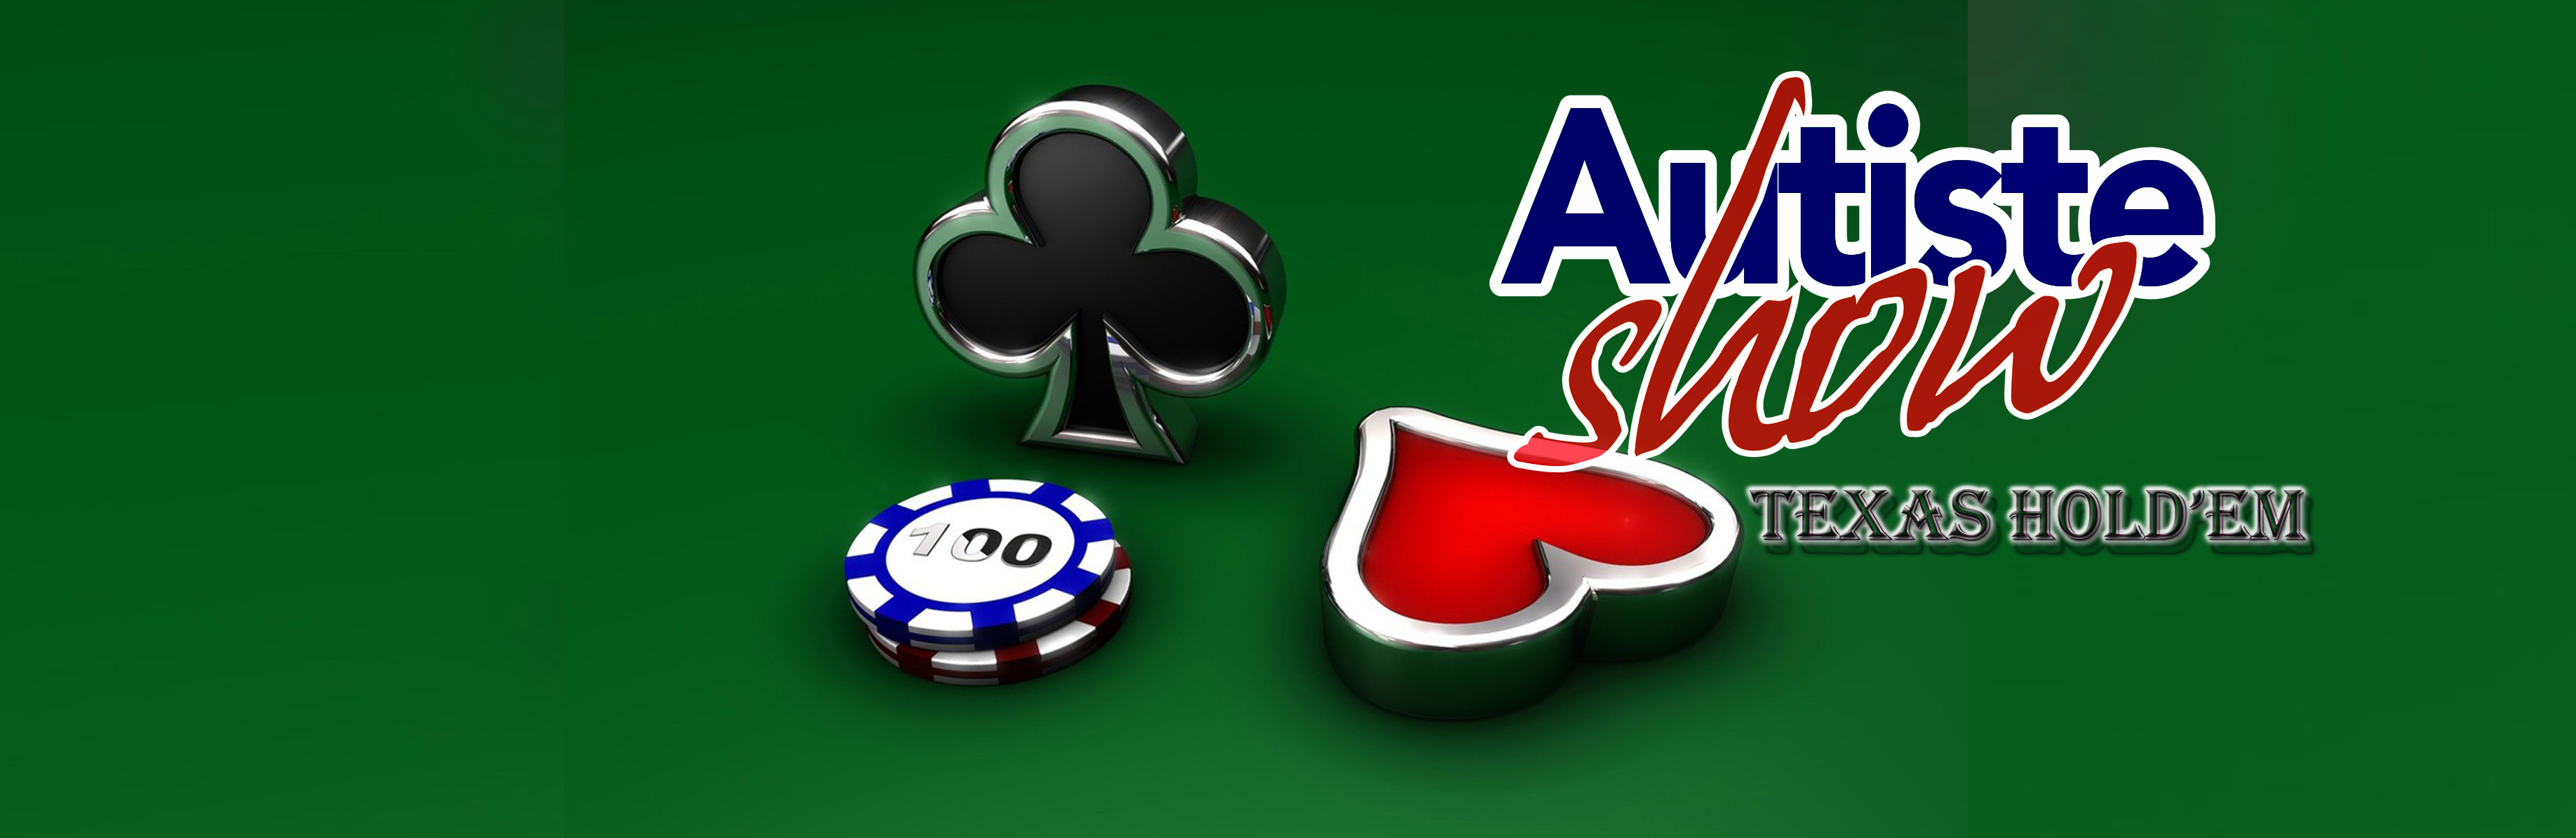 Tournoi de Poker Texas Hold'em mai 2016